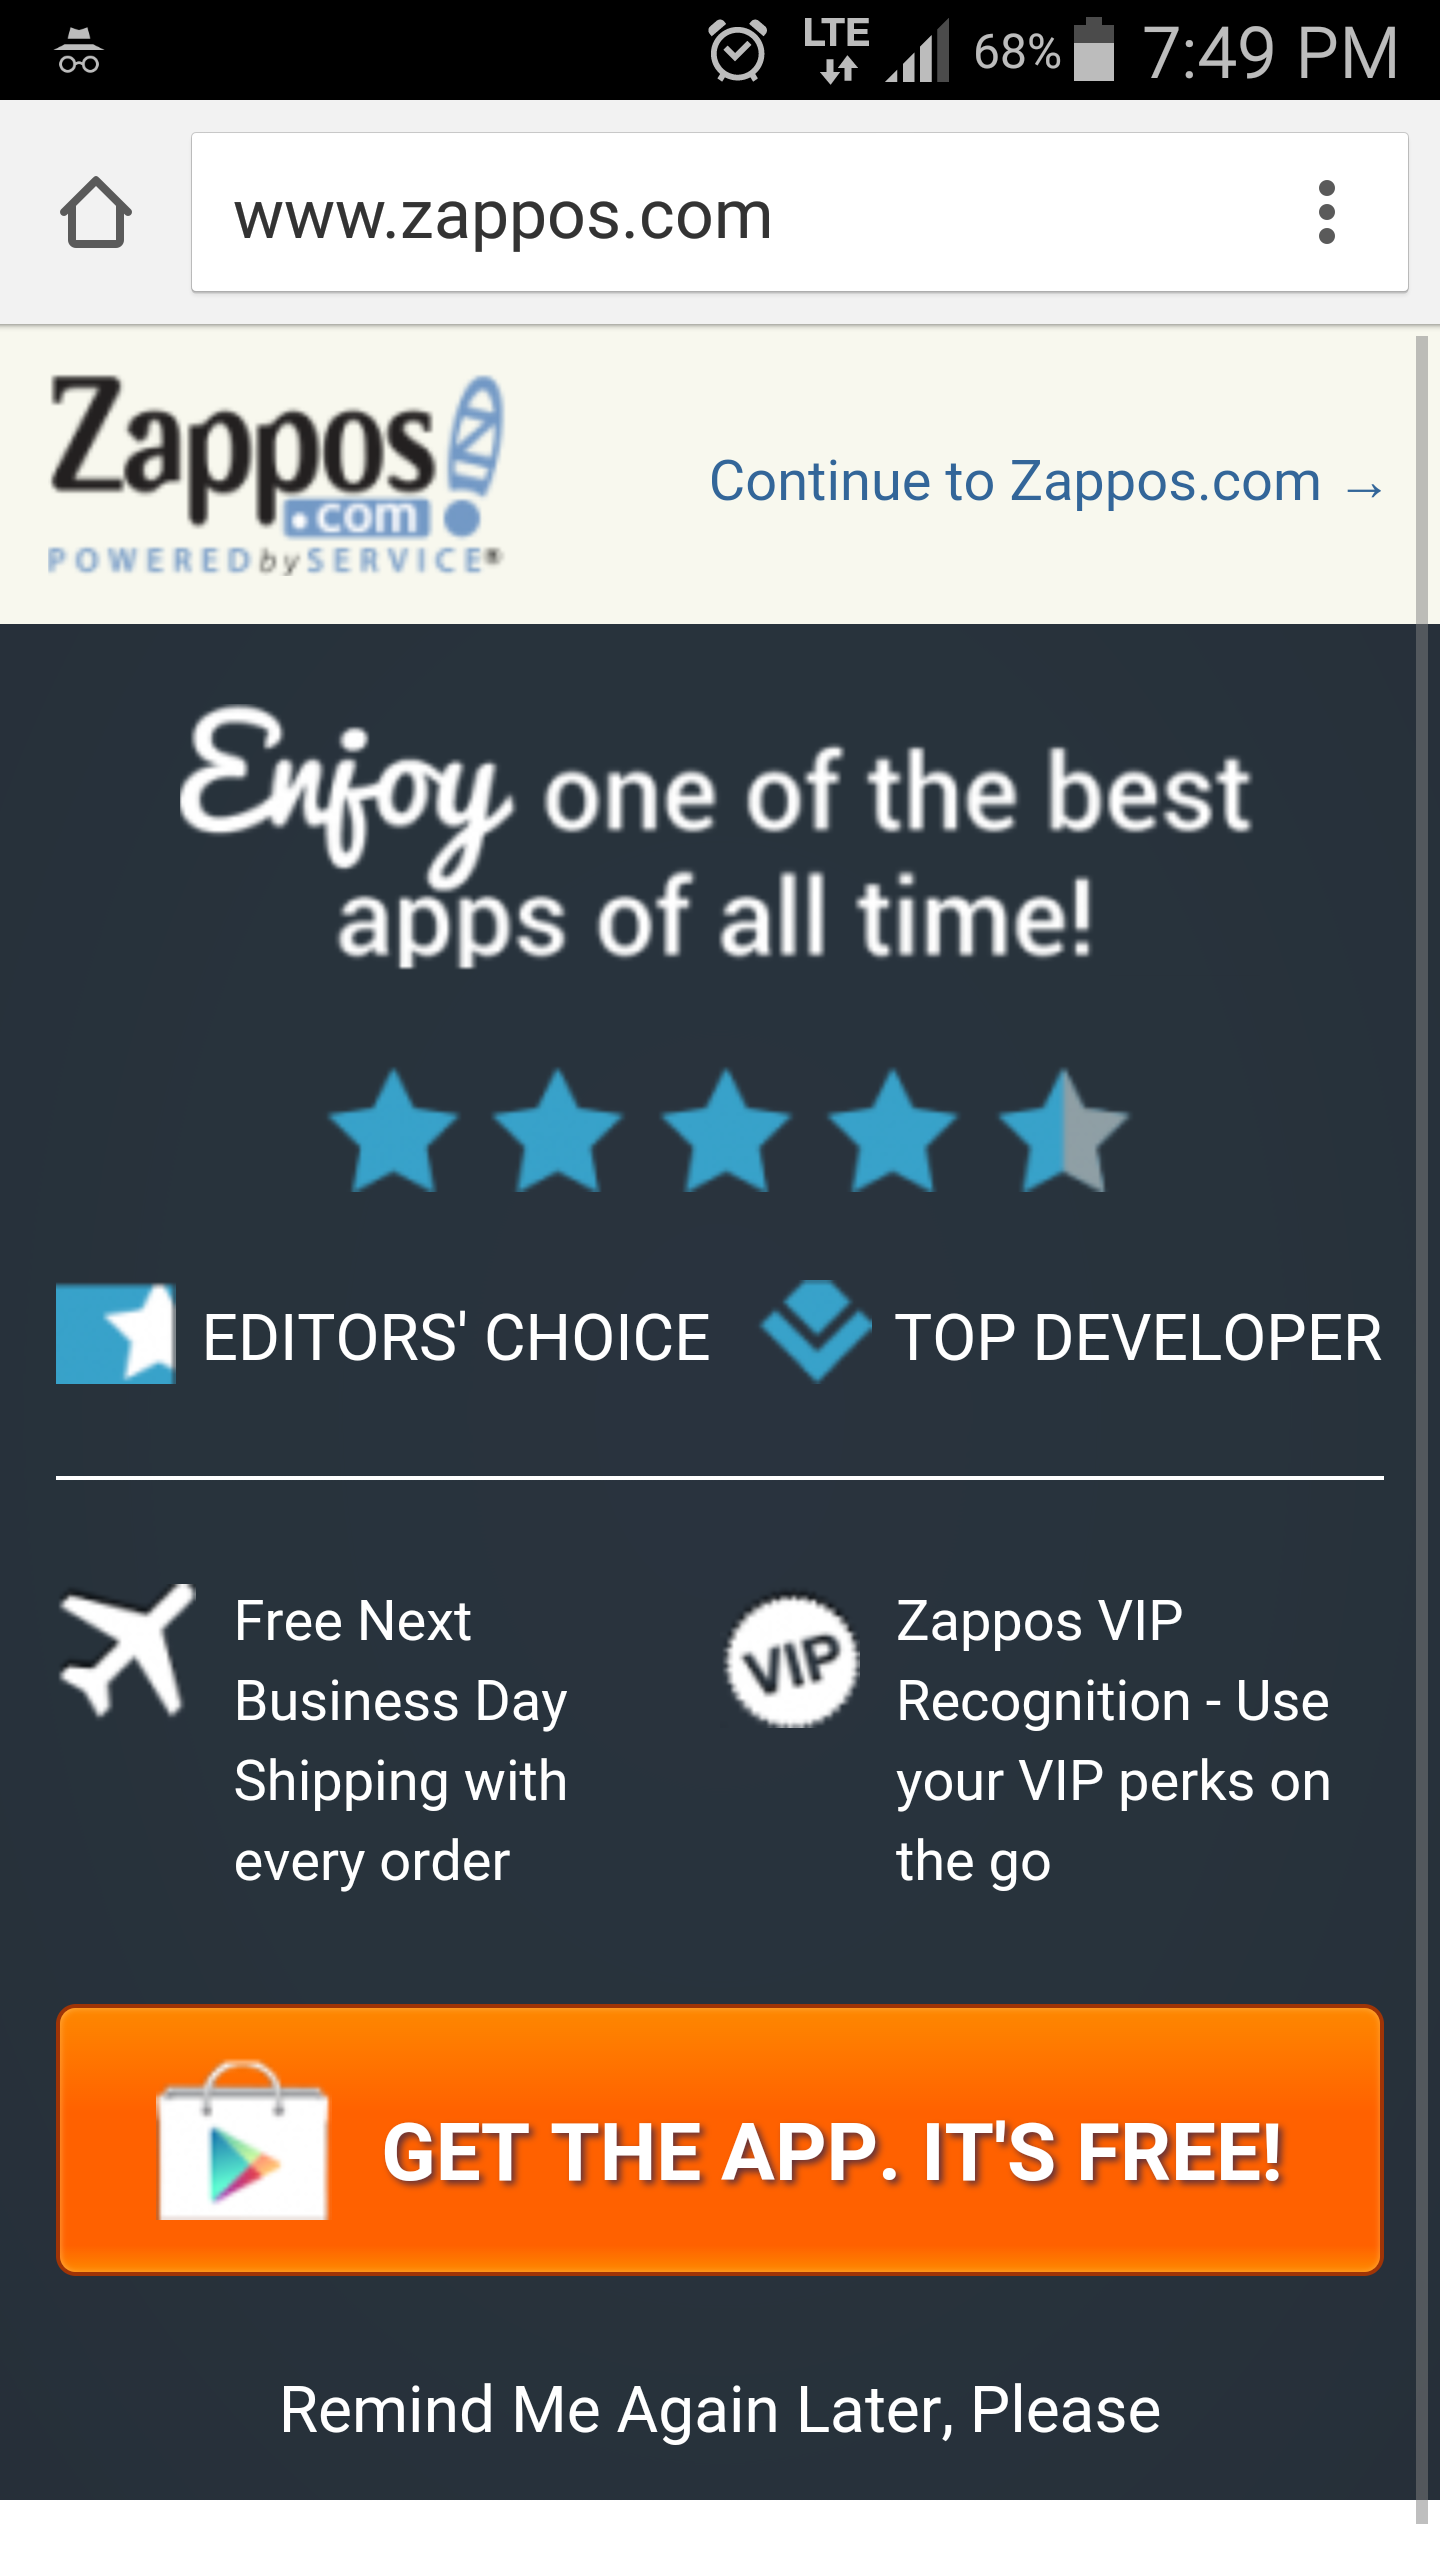 zappos popup promoting their mobile app